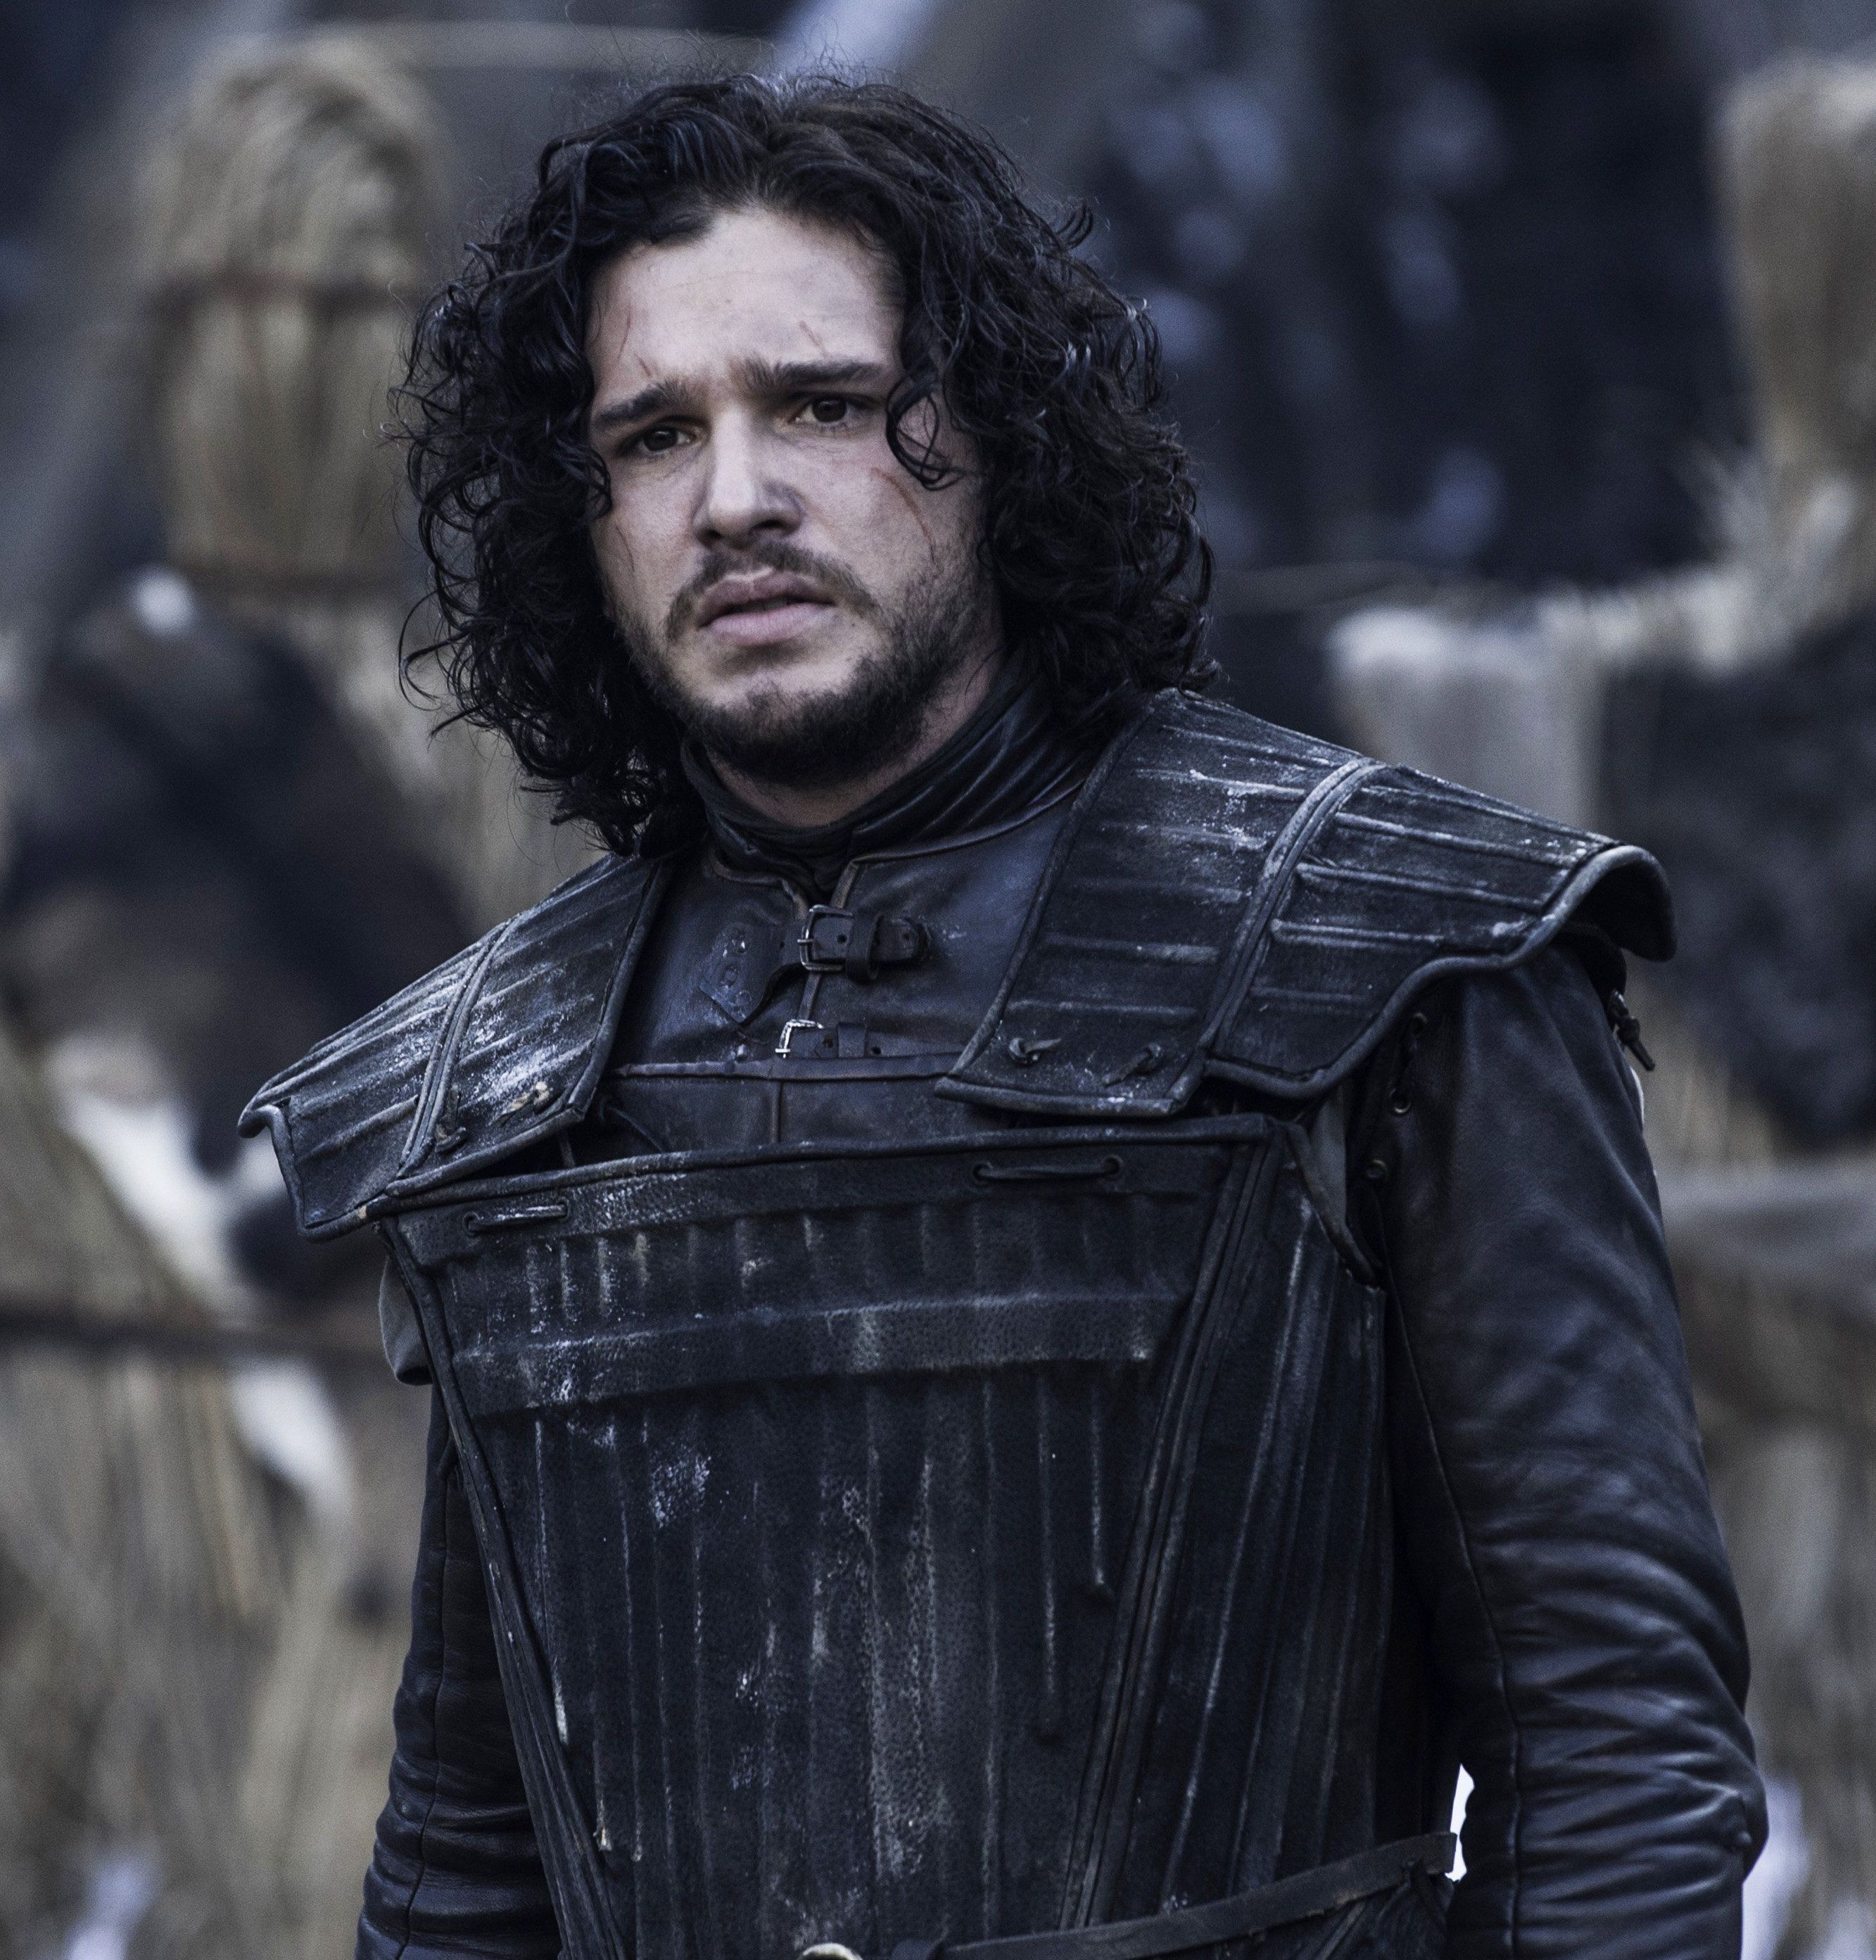 1469992670 elle kit harington hair 20 Things You Didn't Know About Kit Harington